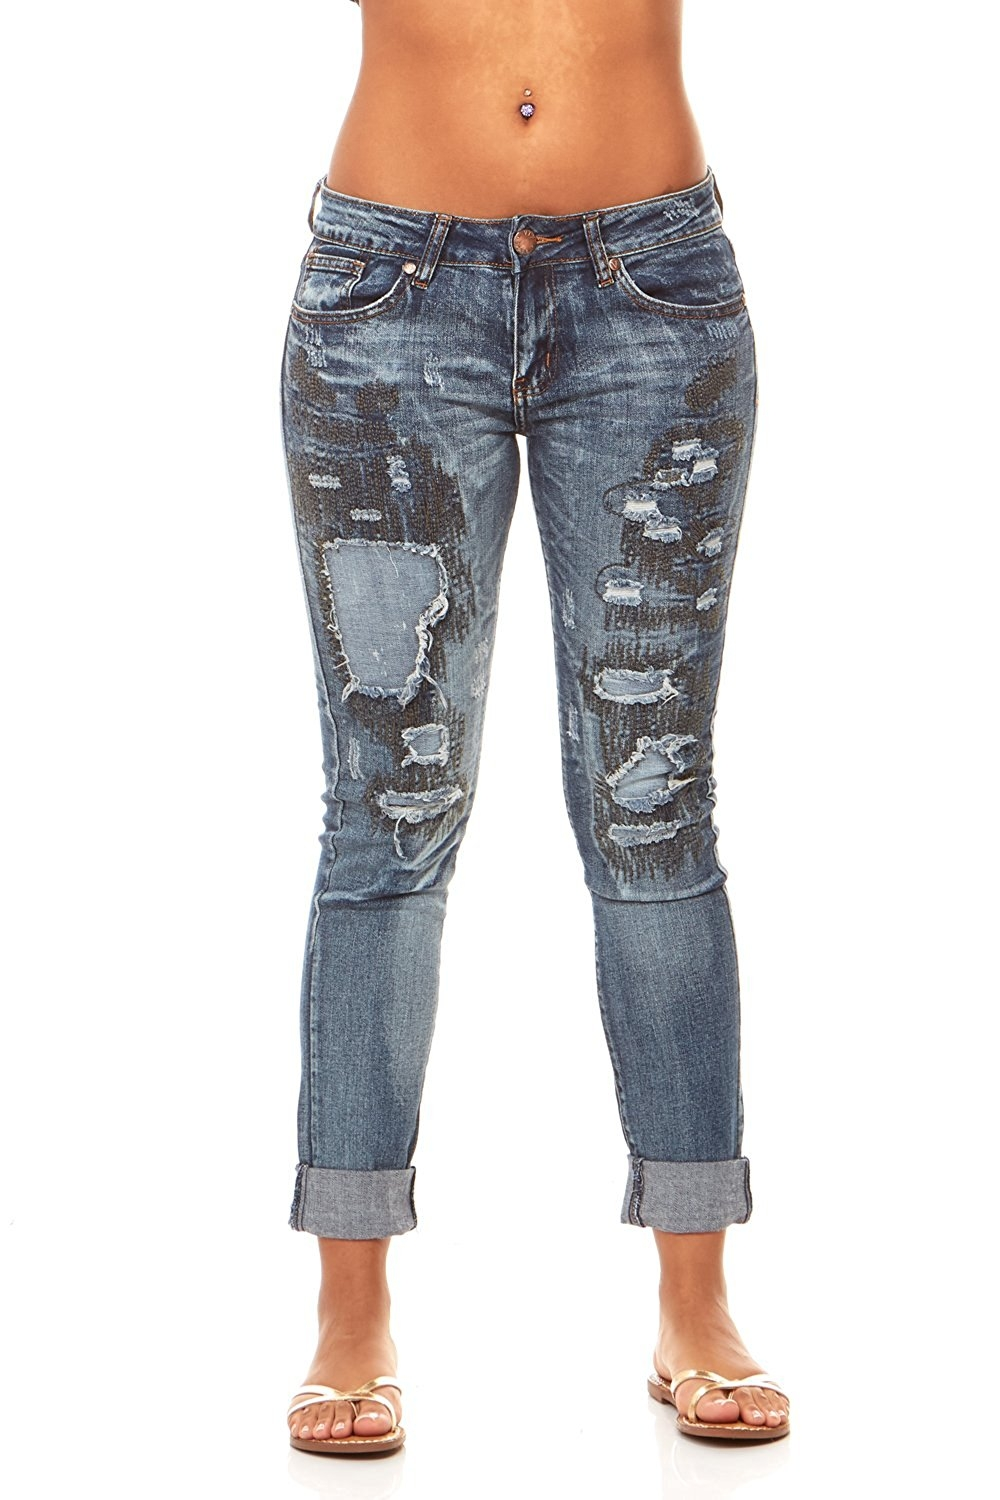 VIP Jeans for women | Ripped Distressed and Repaired Butt Lift Skinny jeans with Comfort Stretch | Junior sizes stylish...